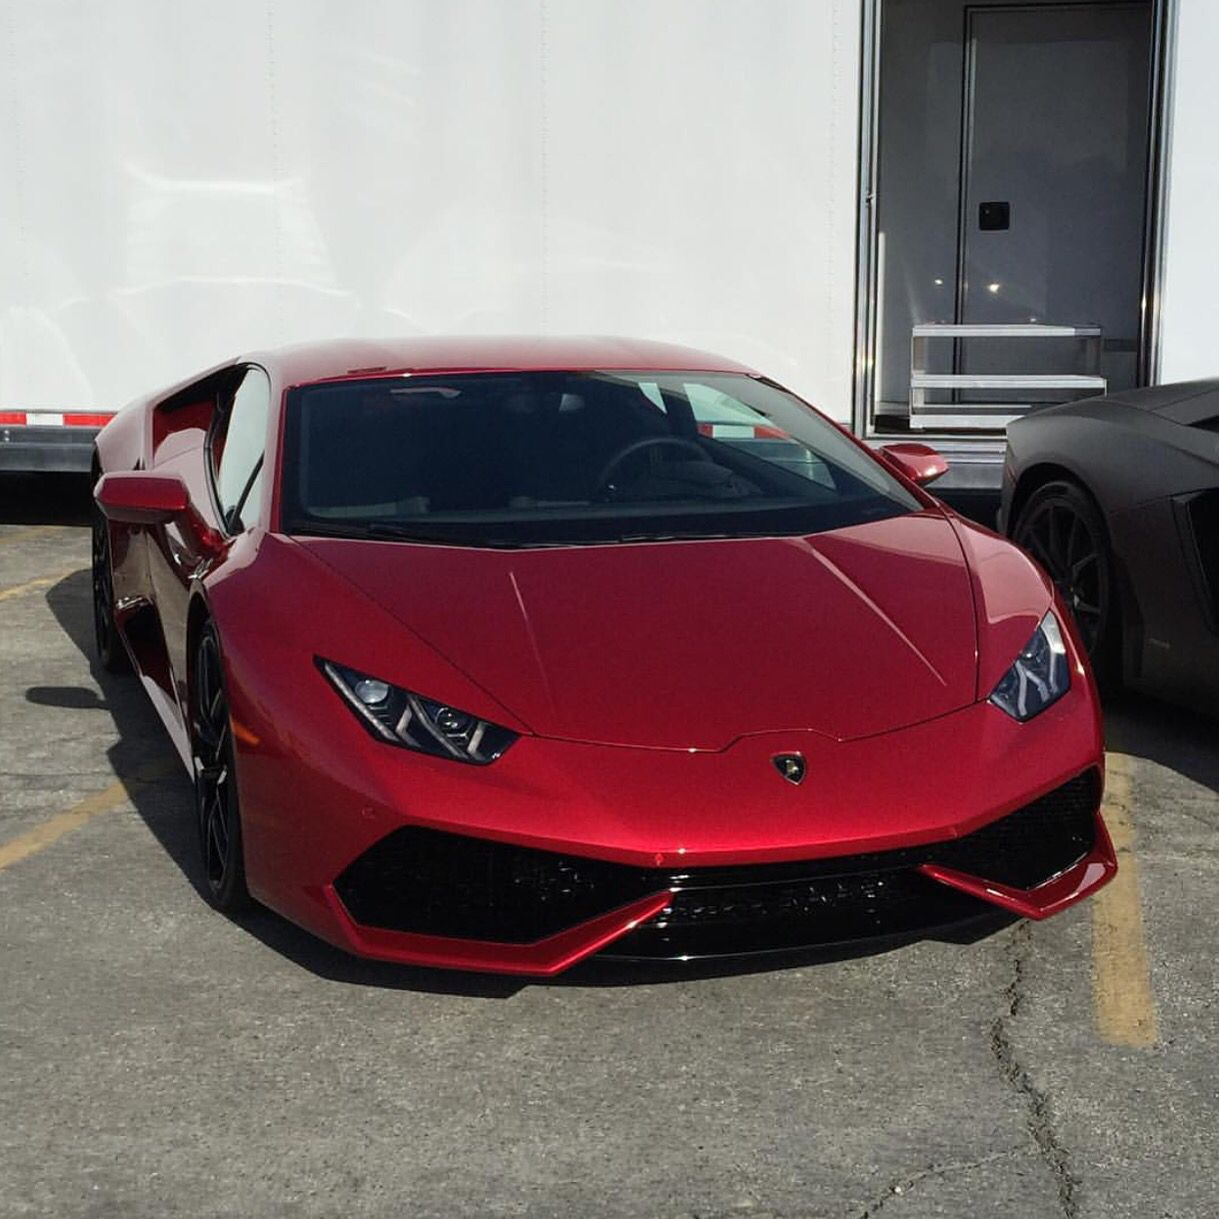 Lamborghini Huracan Painted In Rosso Efesto Photo Taken By: @brxmedia On  Instagram